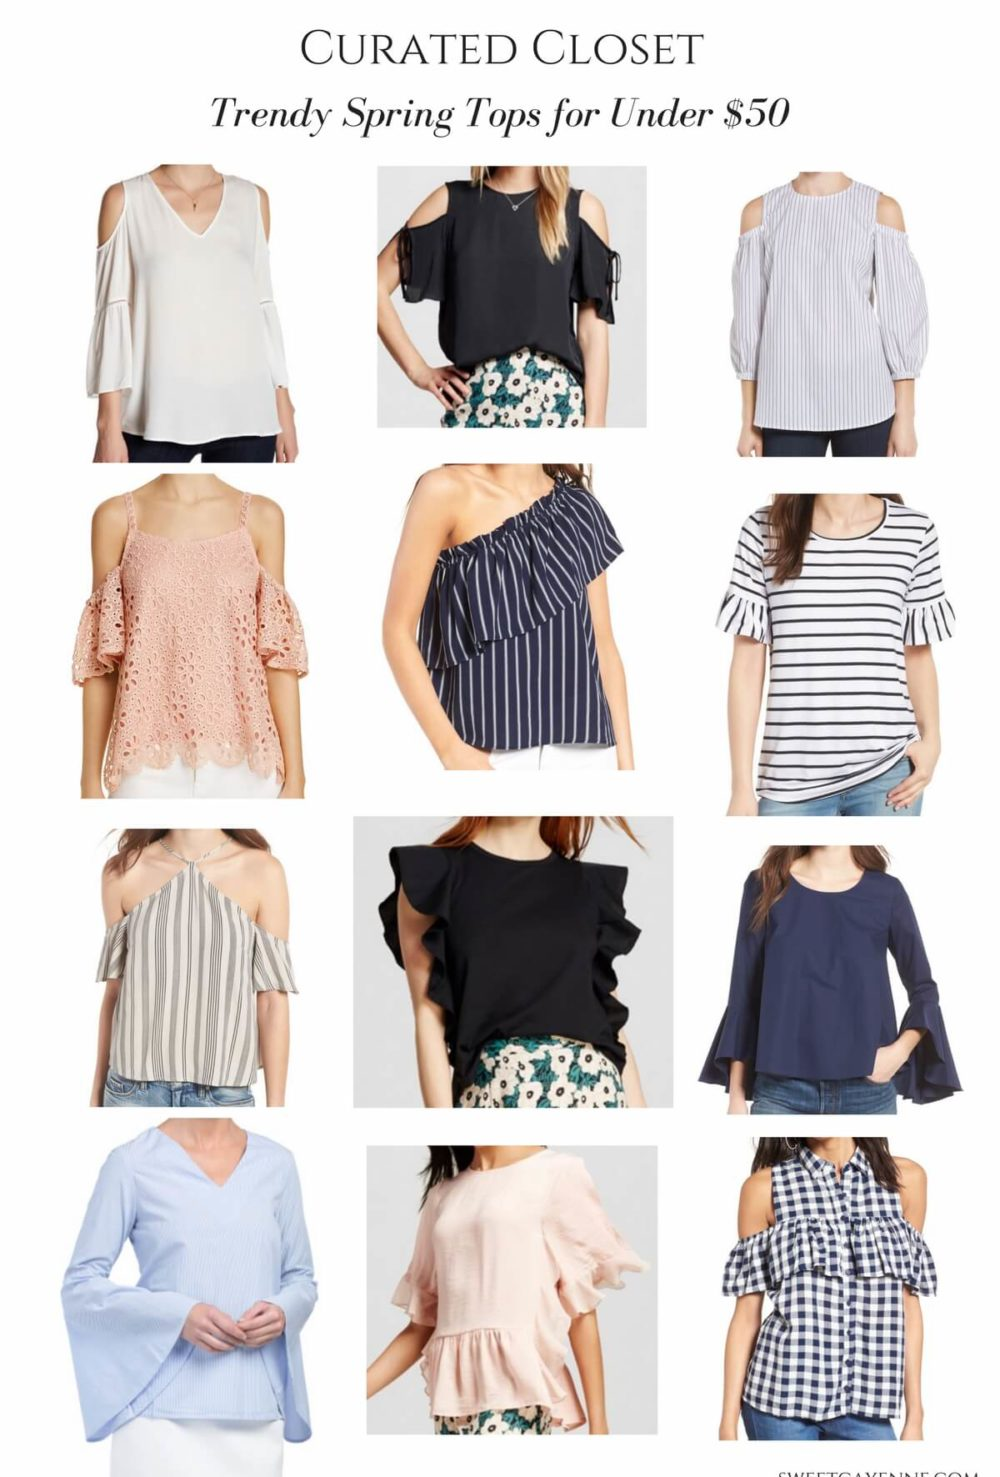 The ultimate guide to trendy spring tops for 2017 - 12 options and all under $50! Spring fashion shopping guide.